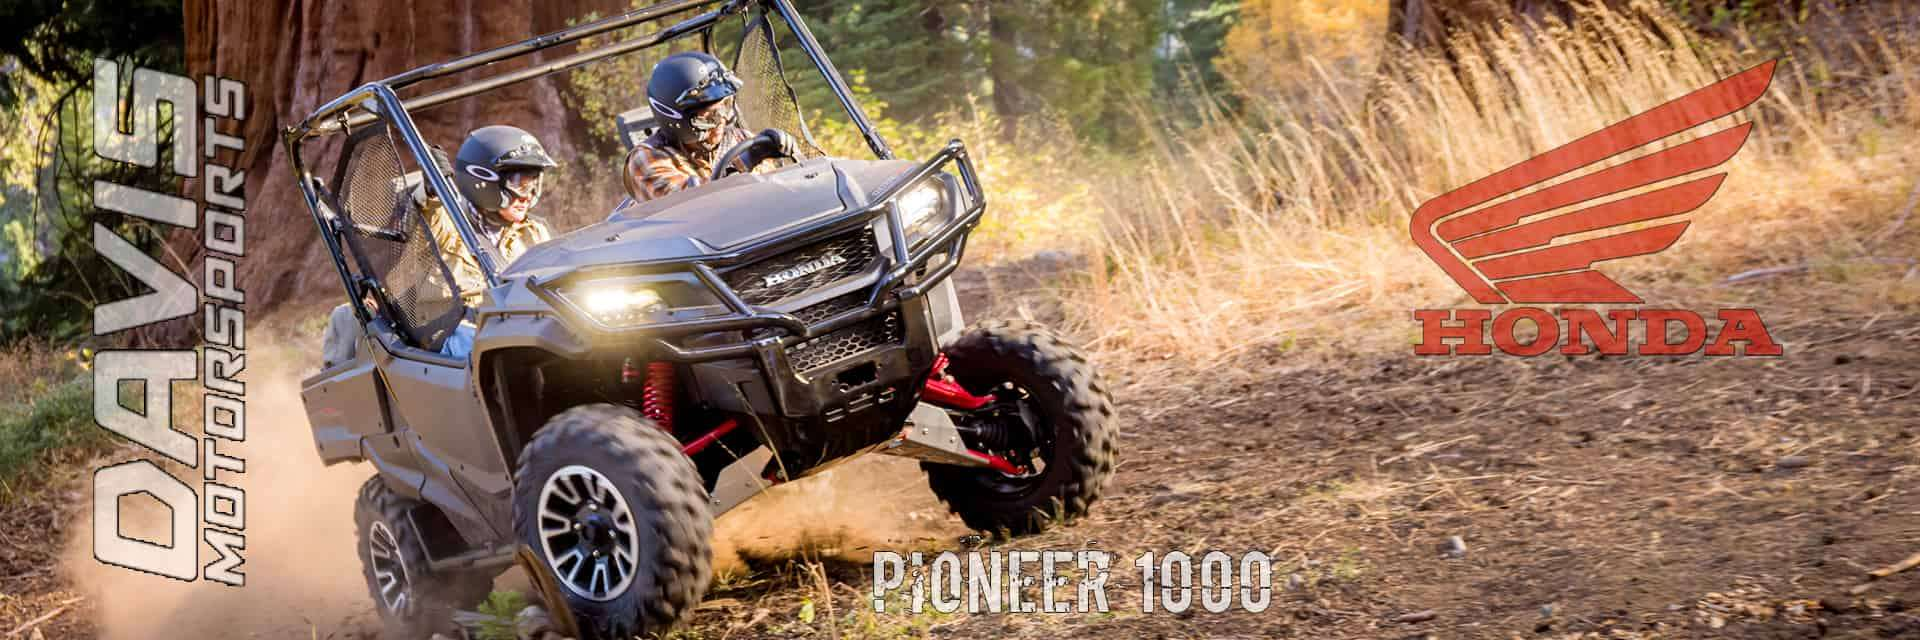 Honda Pioneers are available at Davis Motorsports of Delano | Delano, MN